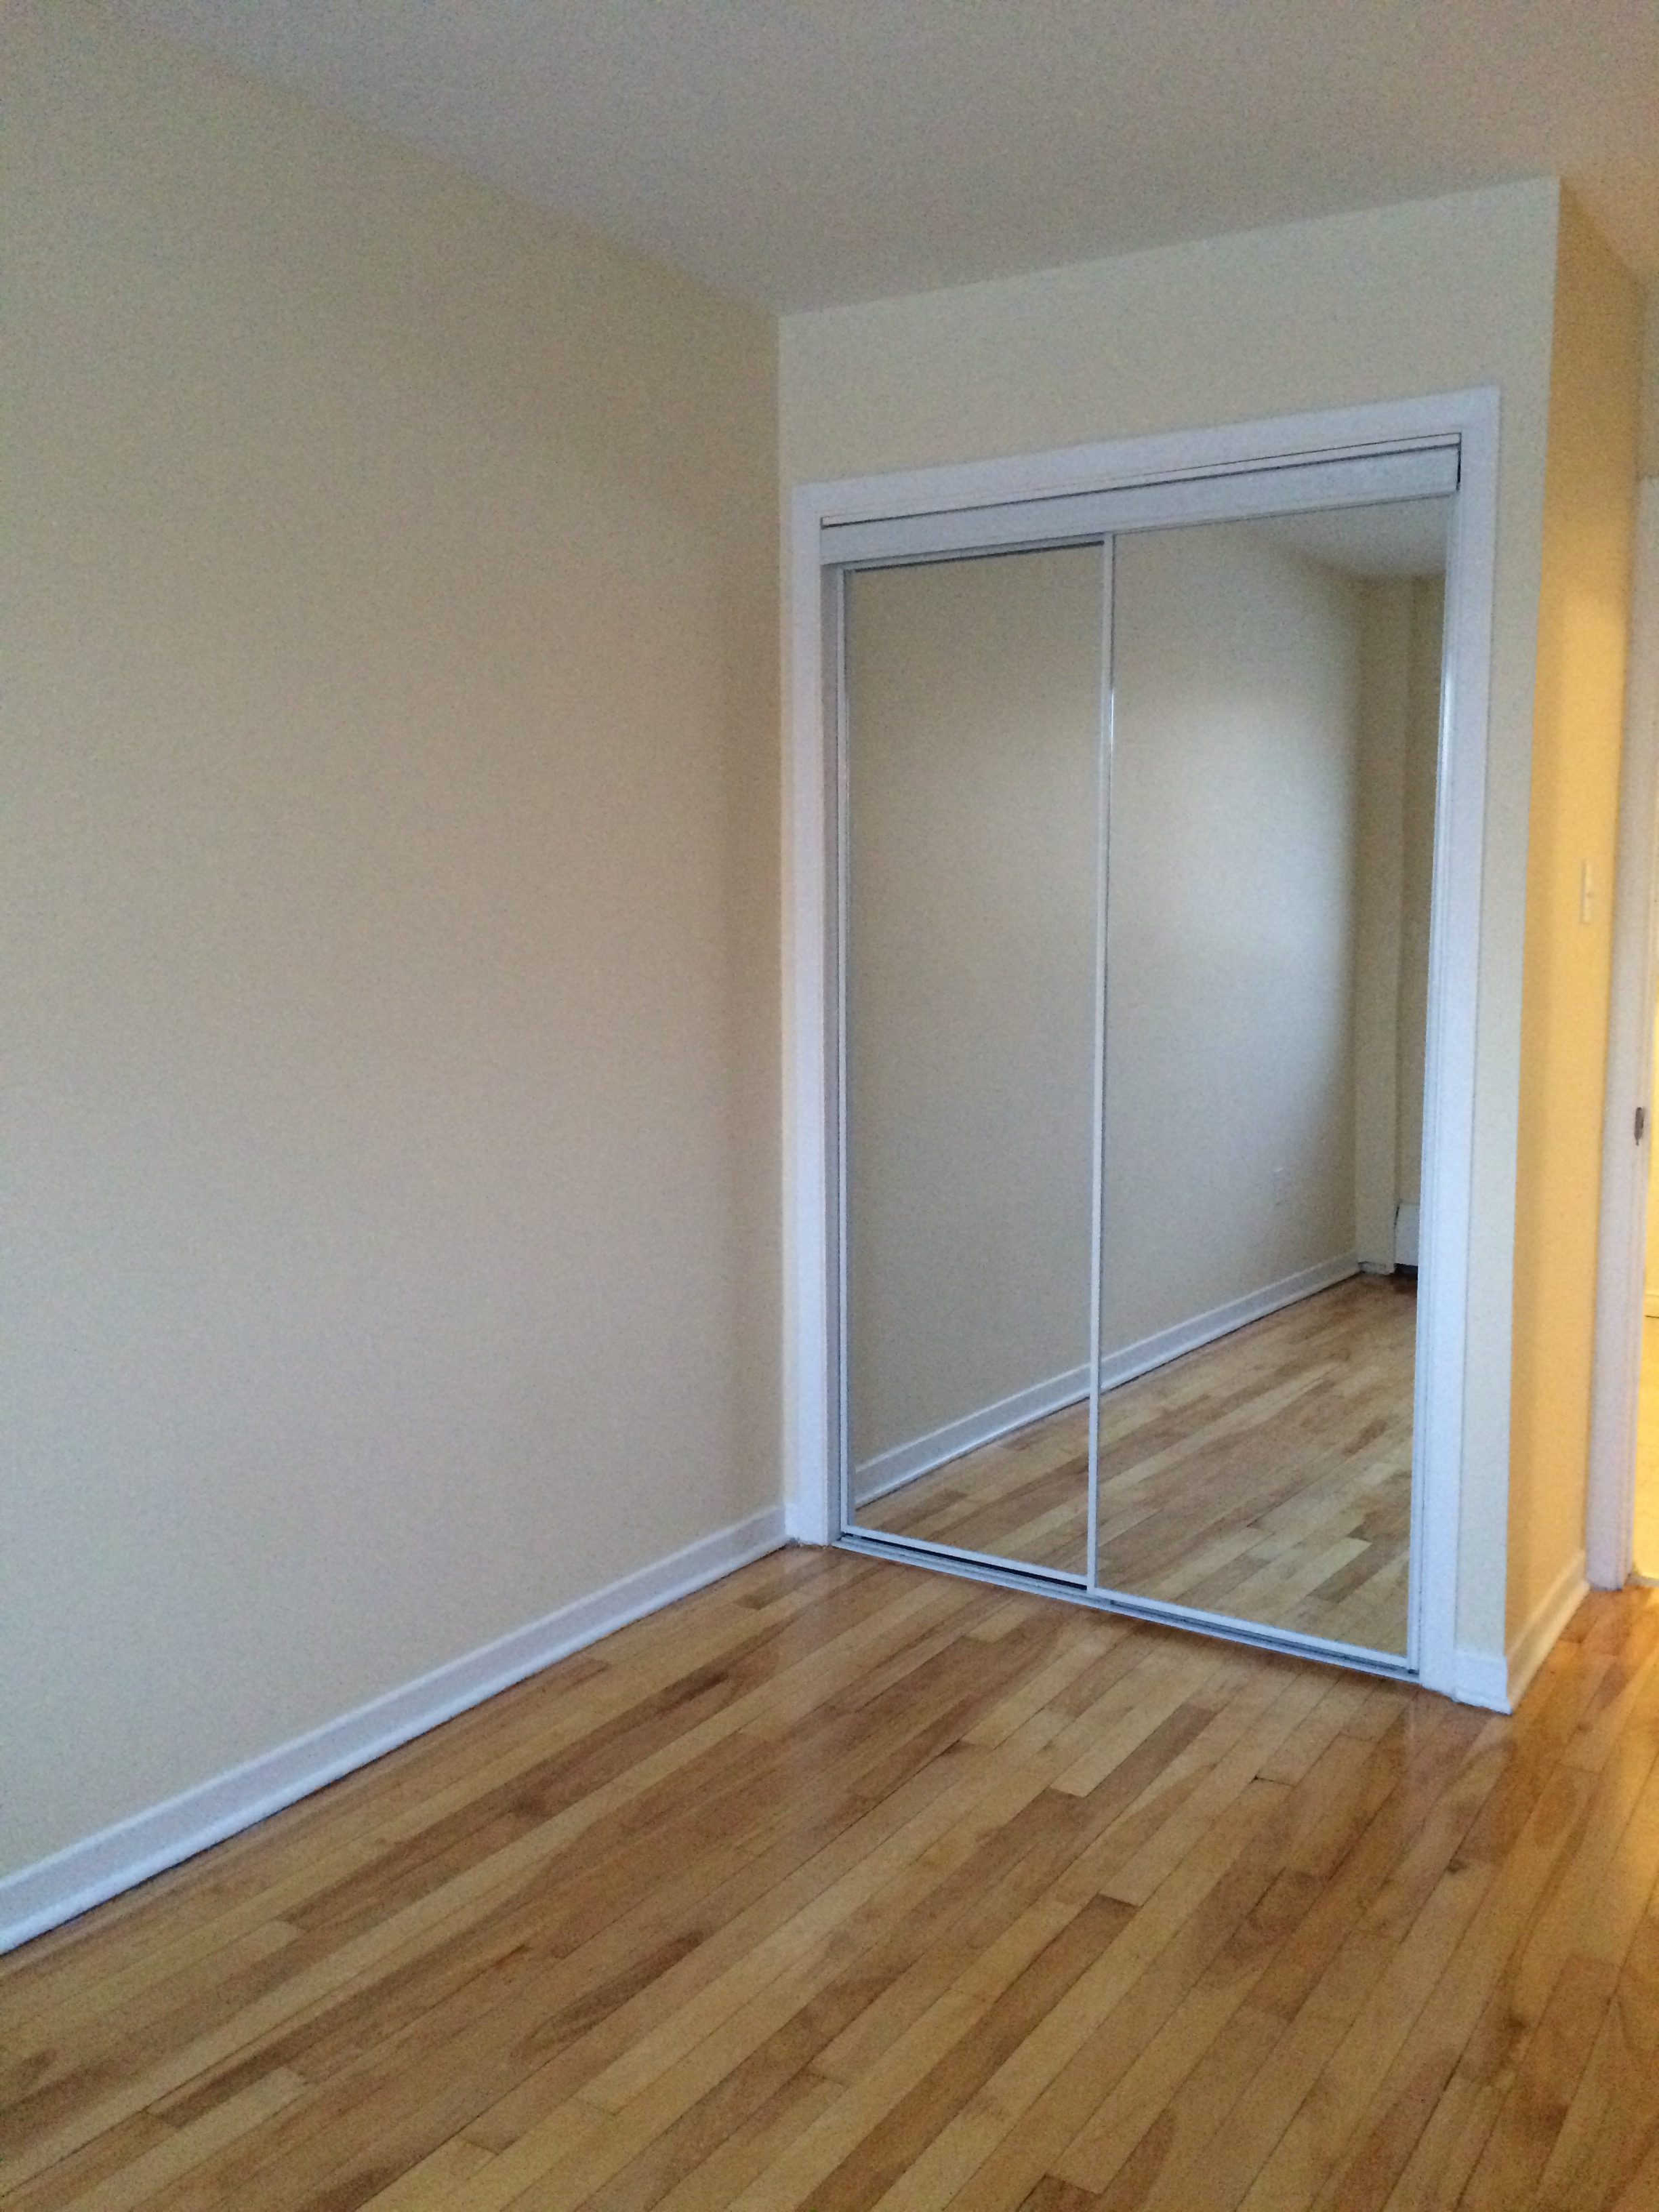 1 bedroom Apartments for rent in Pierrefonds-Roxboro at Place Riviera - Photo 03 - RentQuebecApartments – L35788